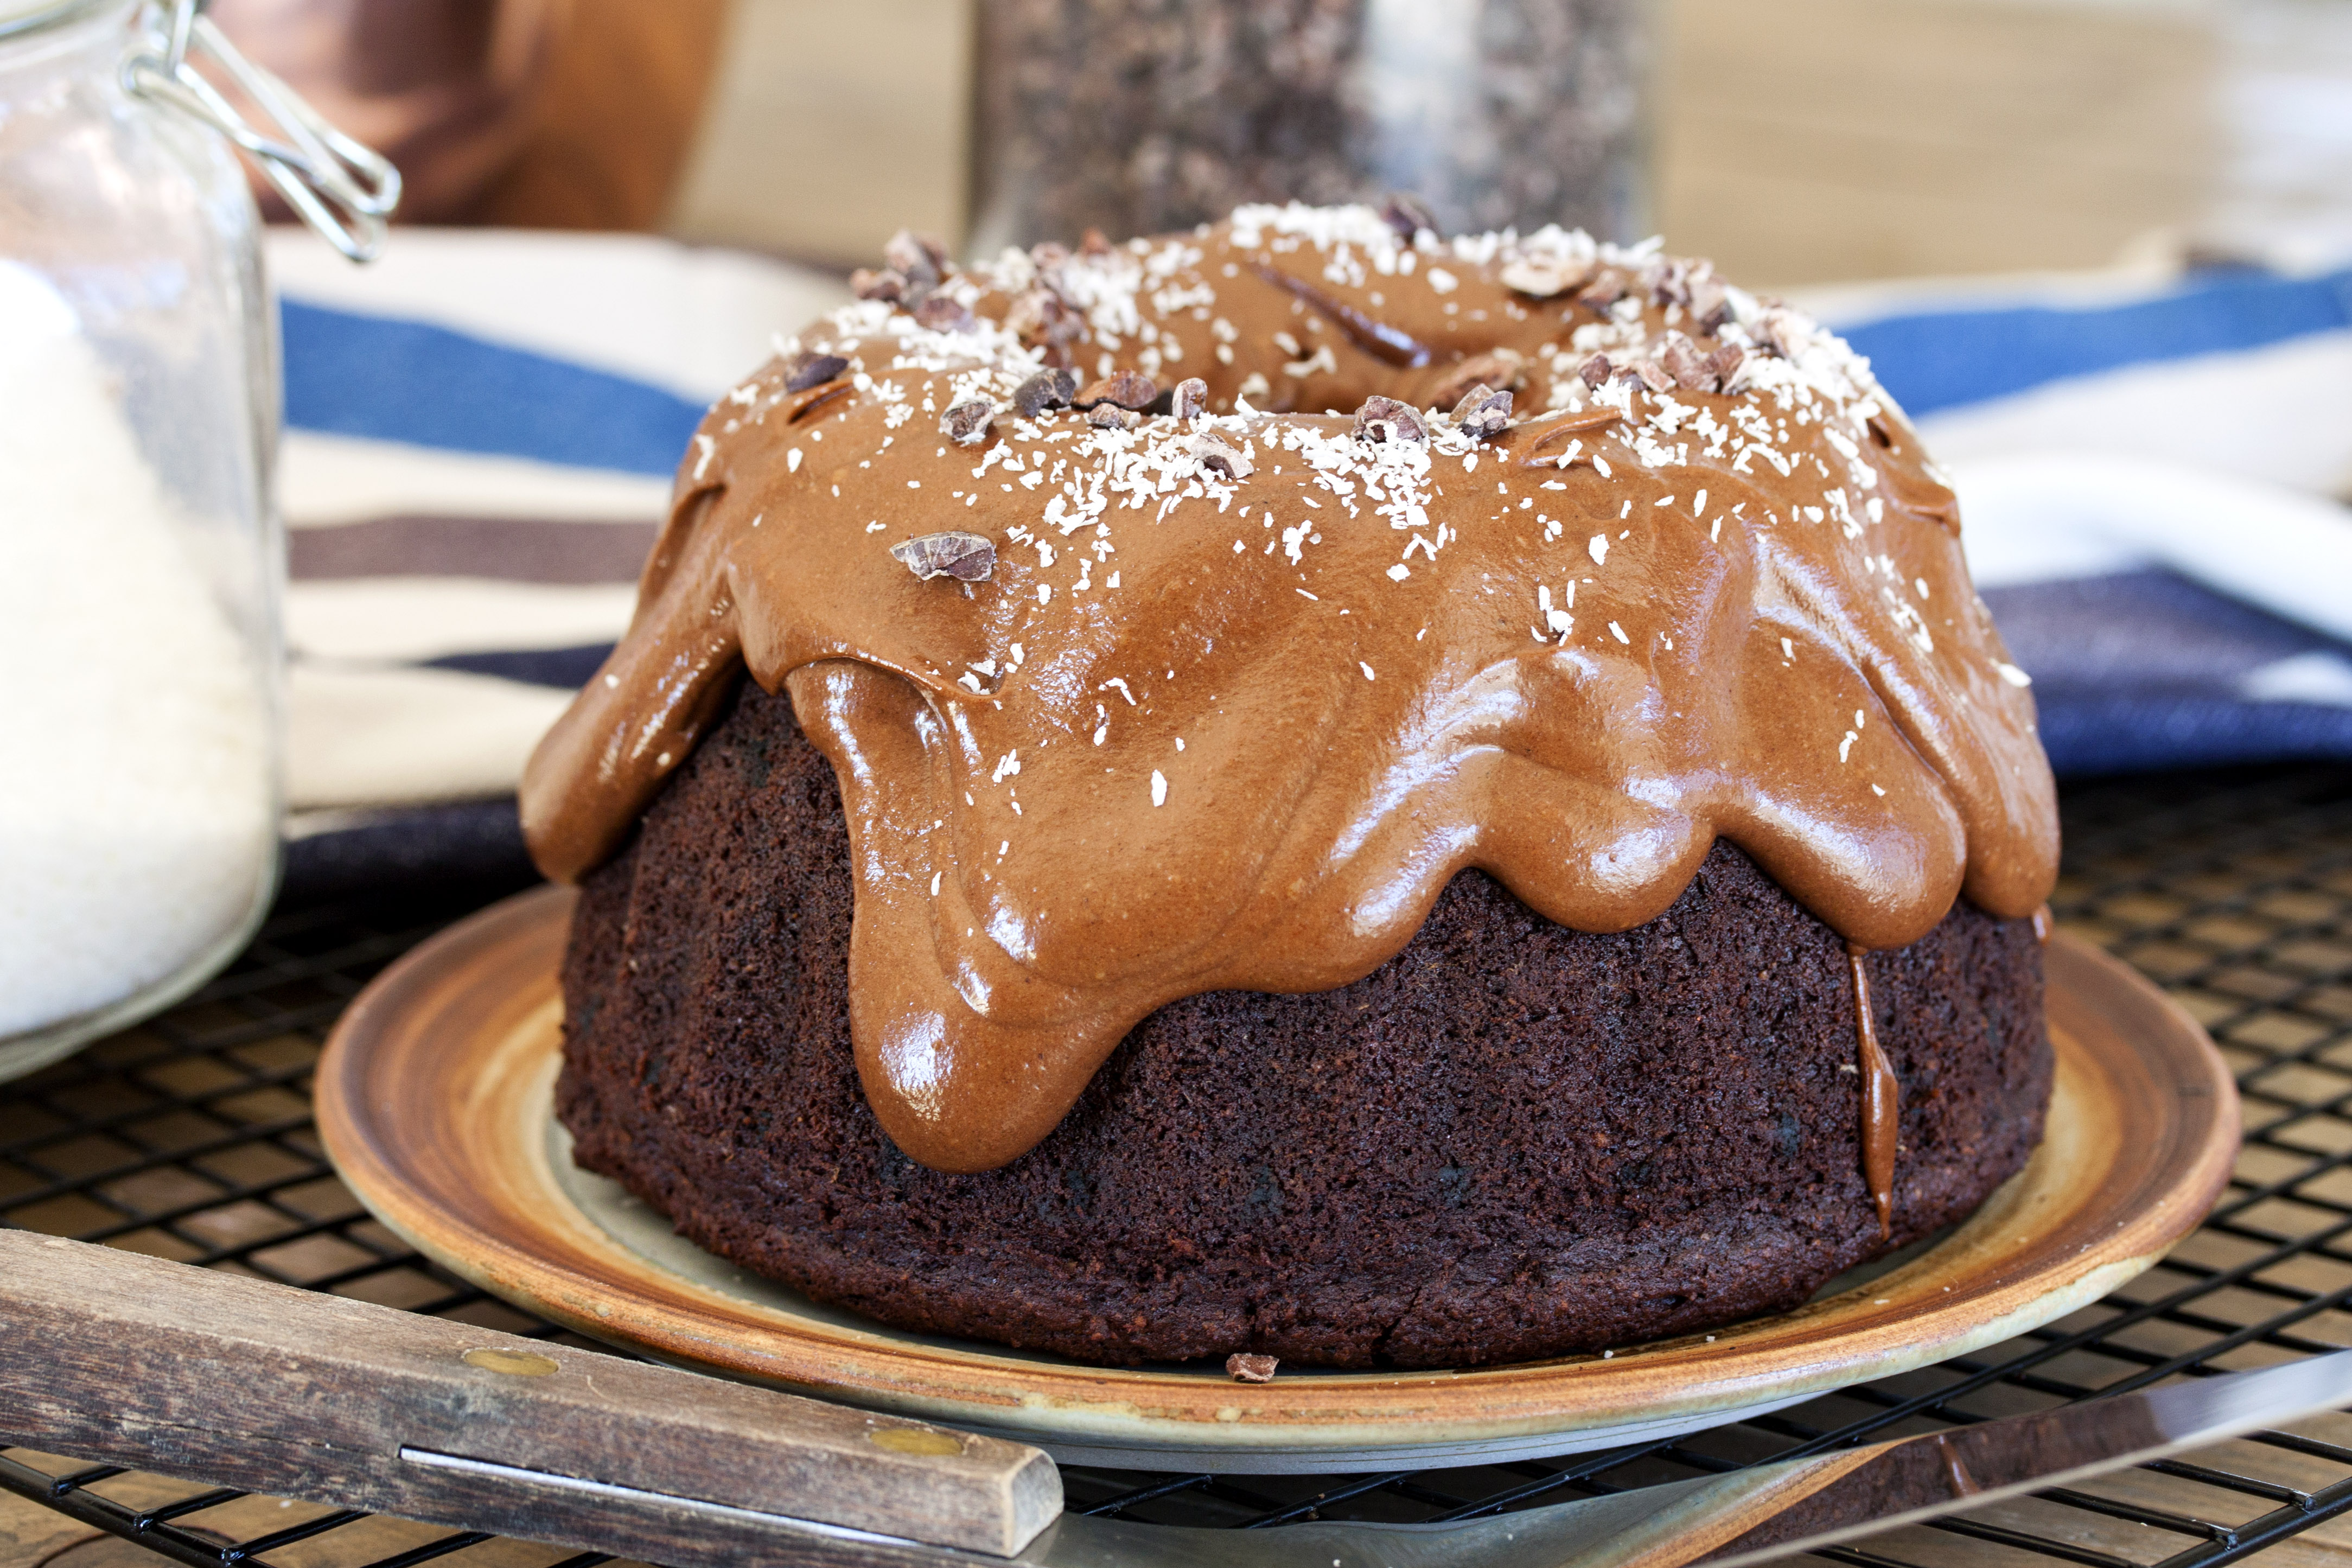 Vegan Chocolate Cake with Frosting